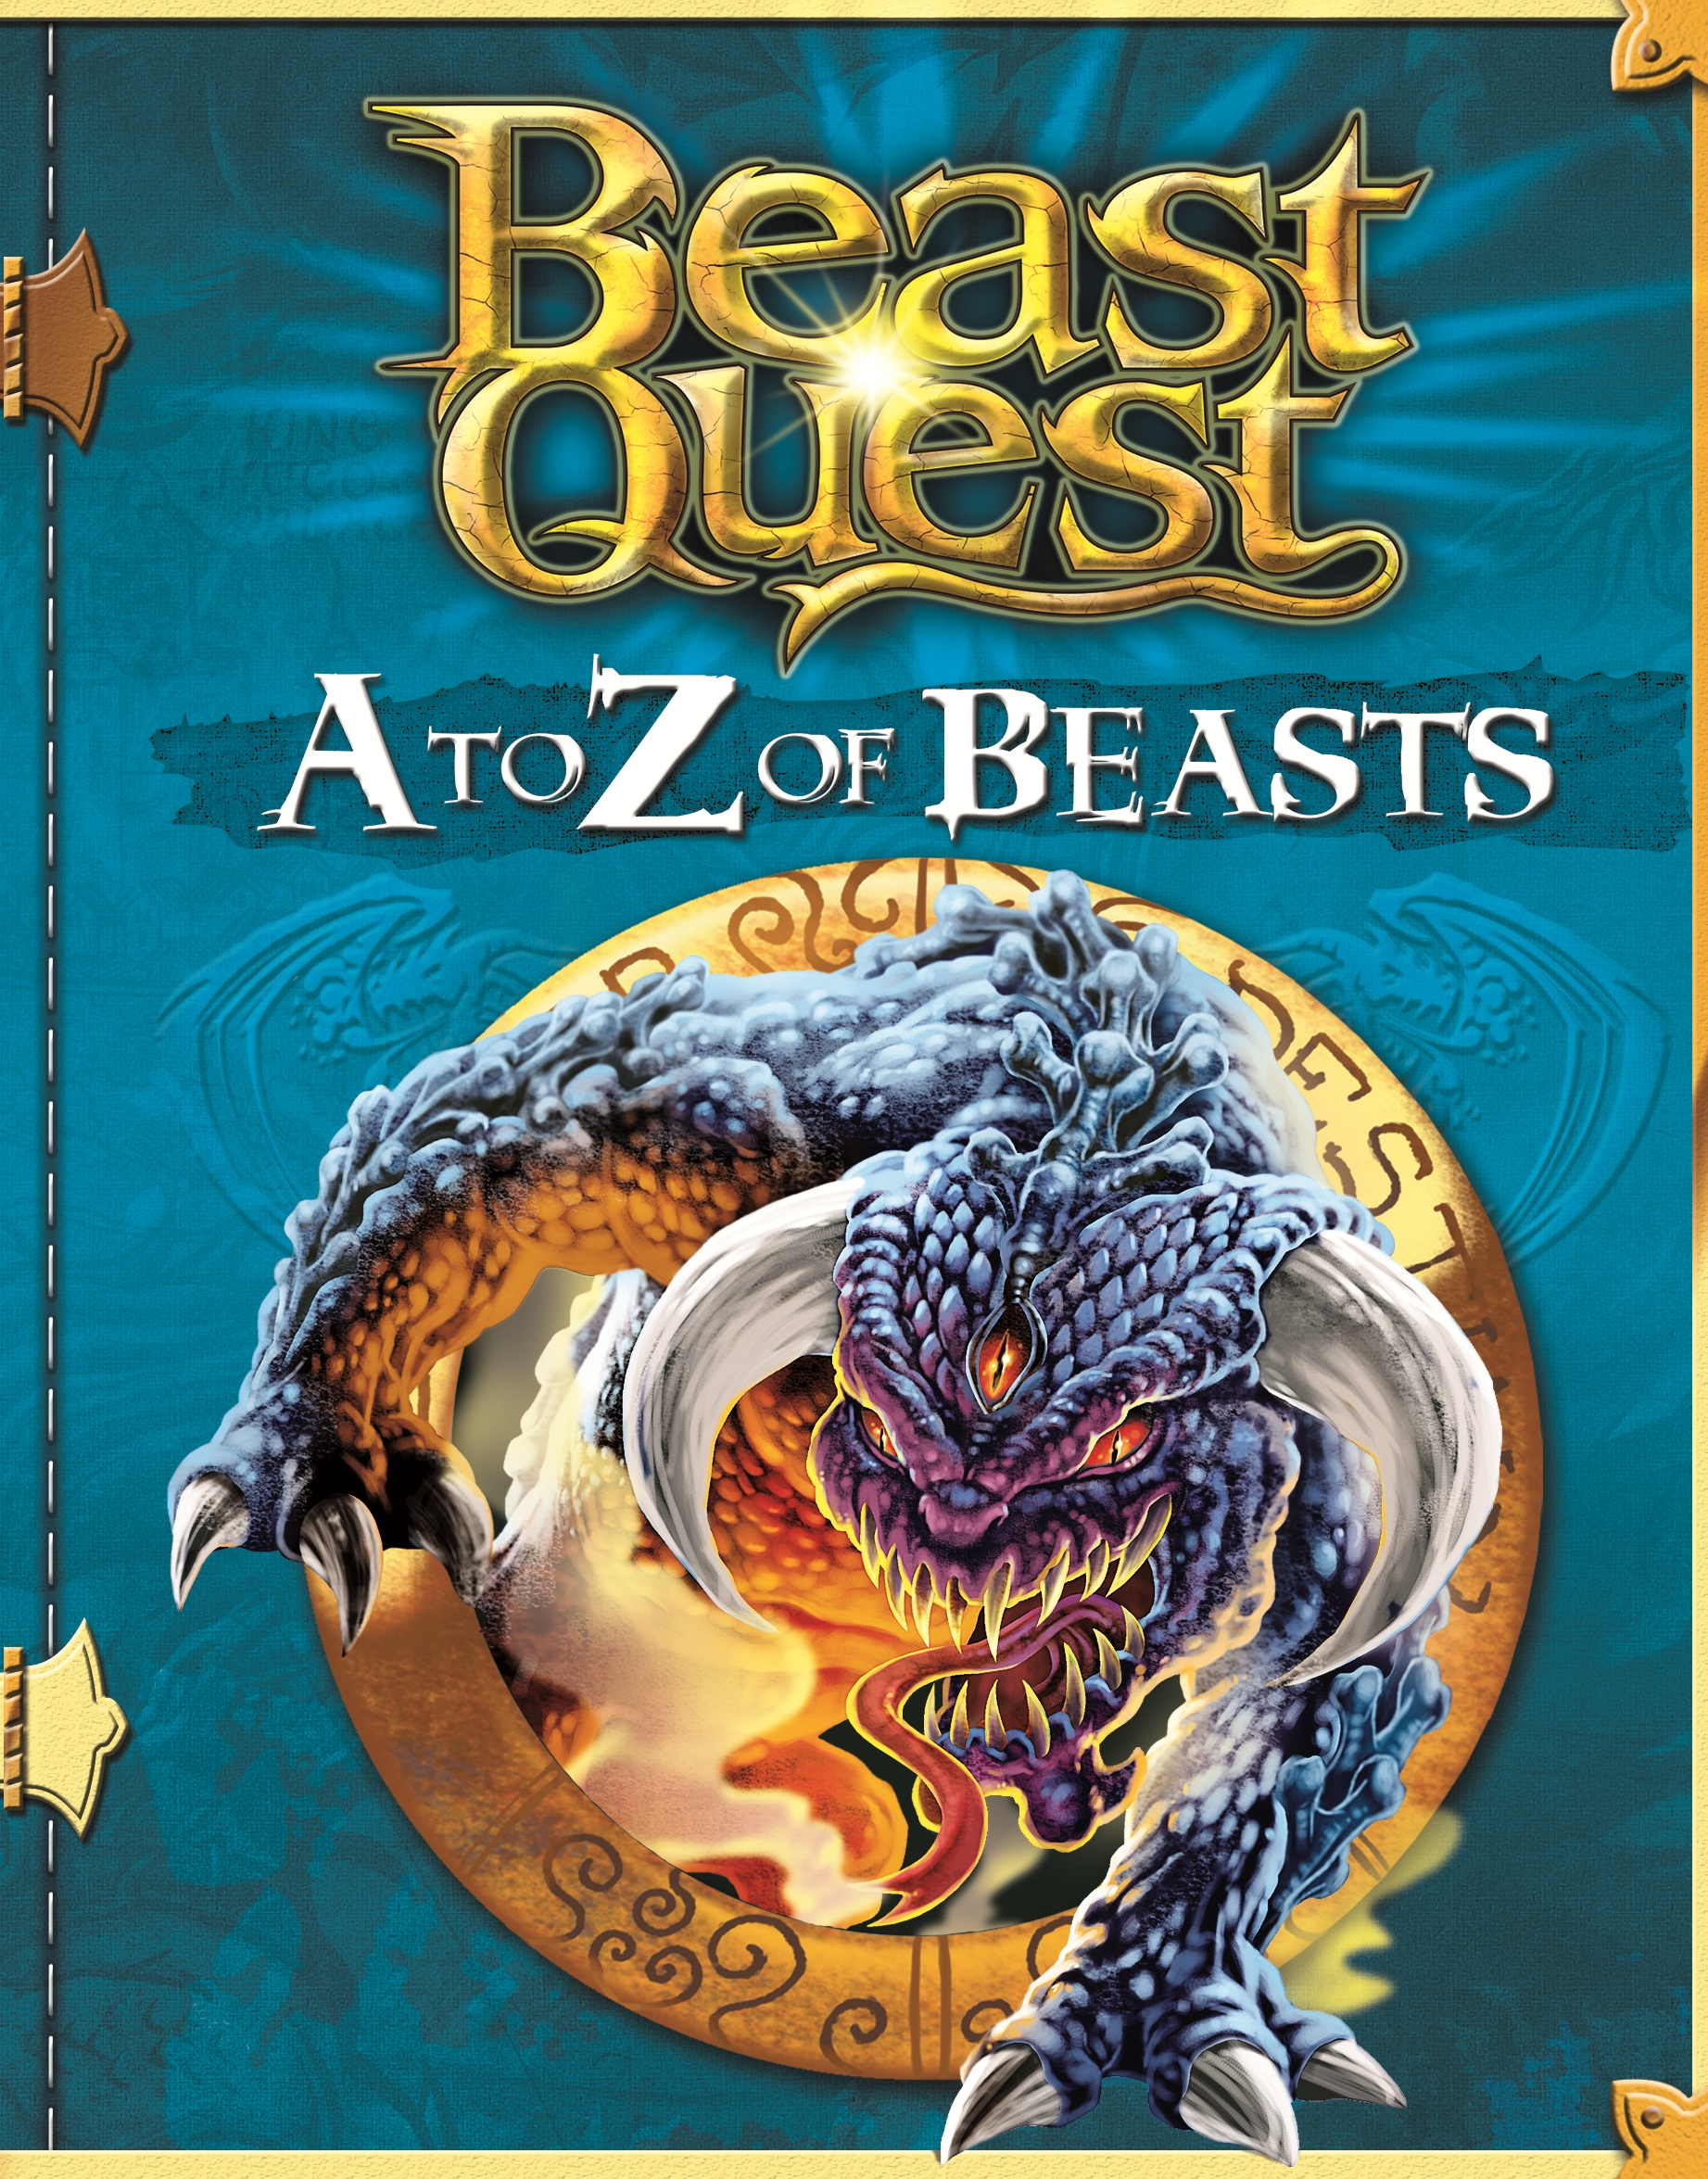 Beast Quest: A to Z of Beasts by Adam Blade, ISBN: 9781408338391